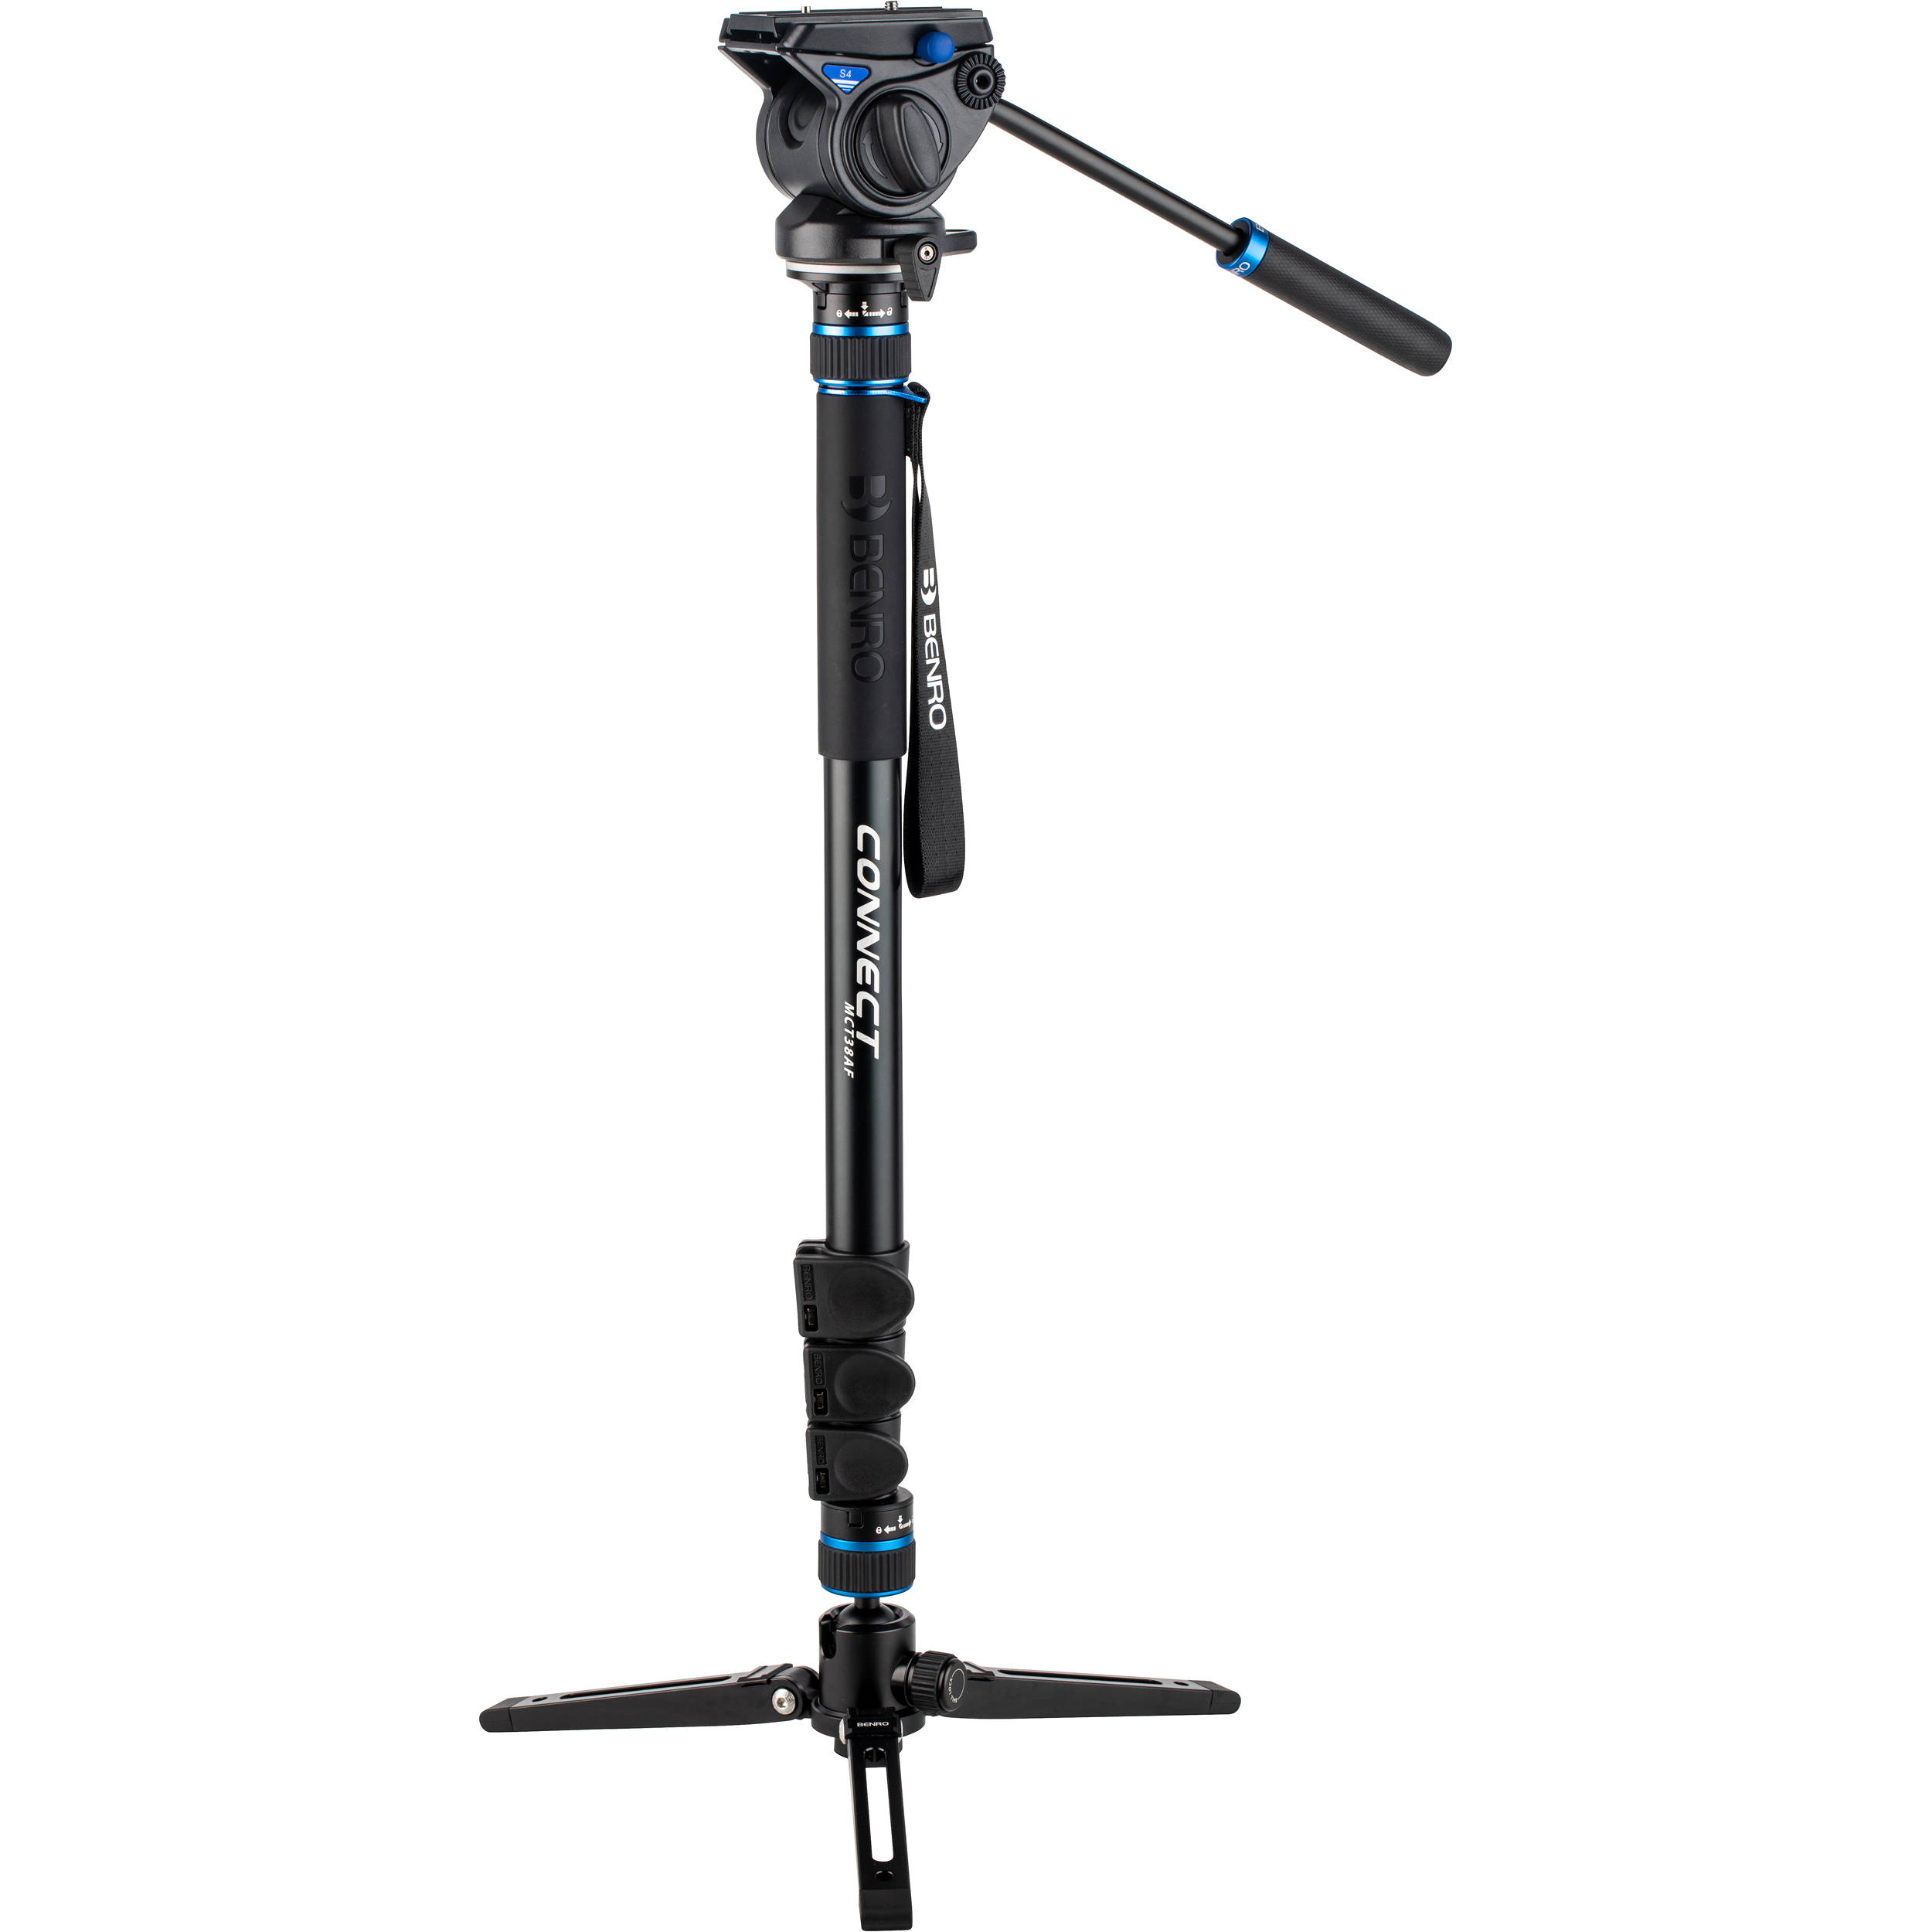 BENRO Connect S4 PRO Video Monopod Kit MCT38AFS4